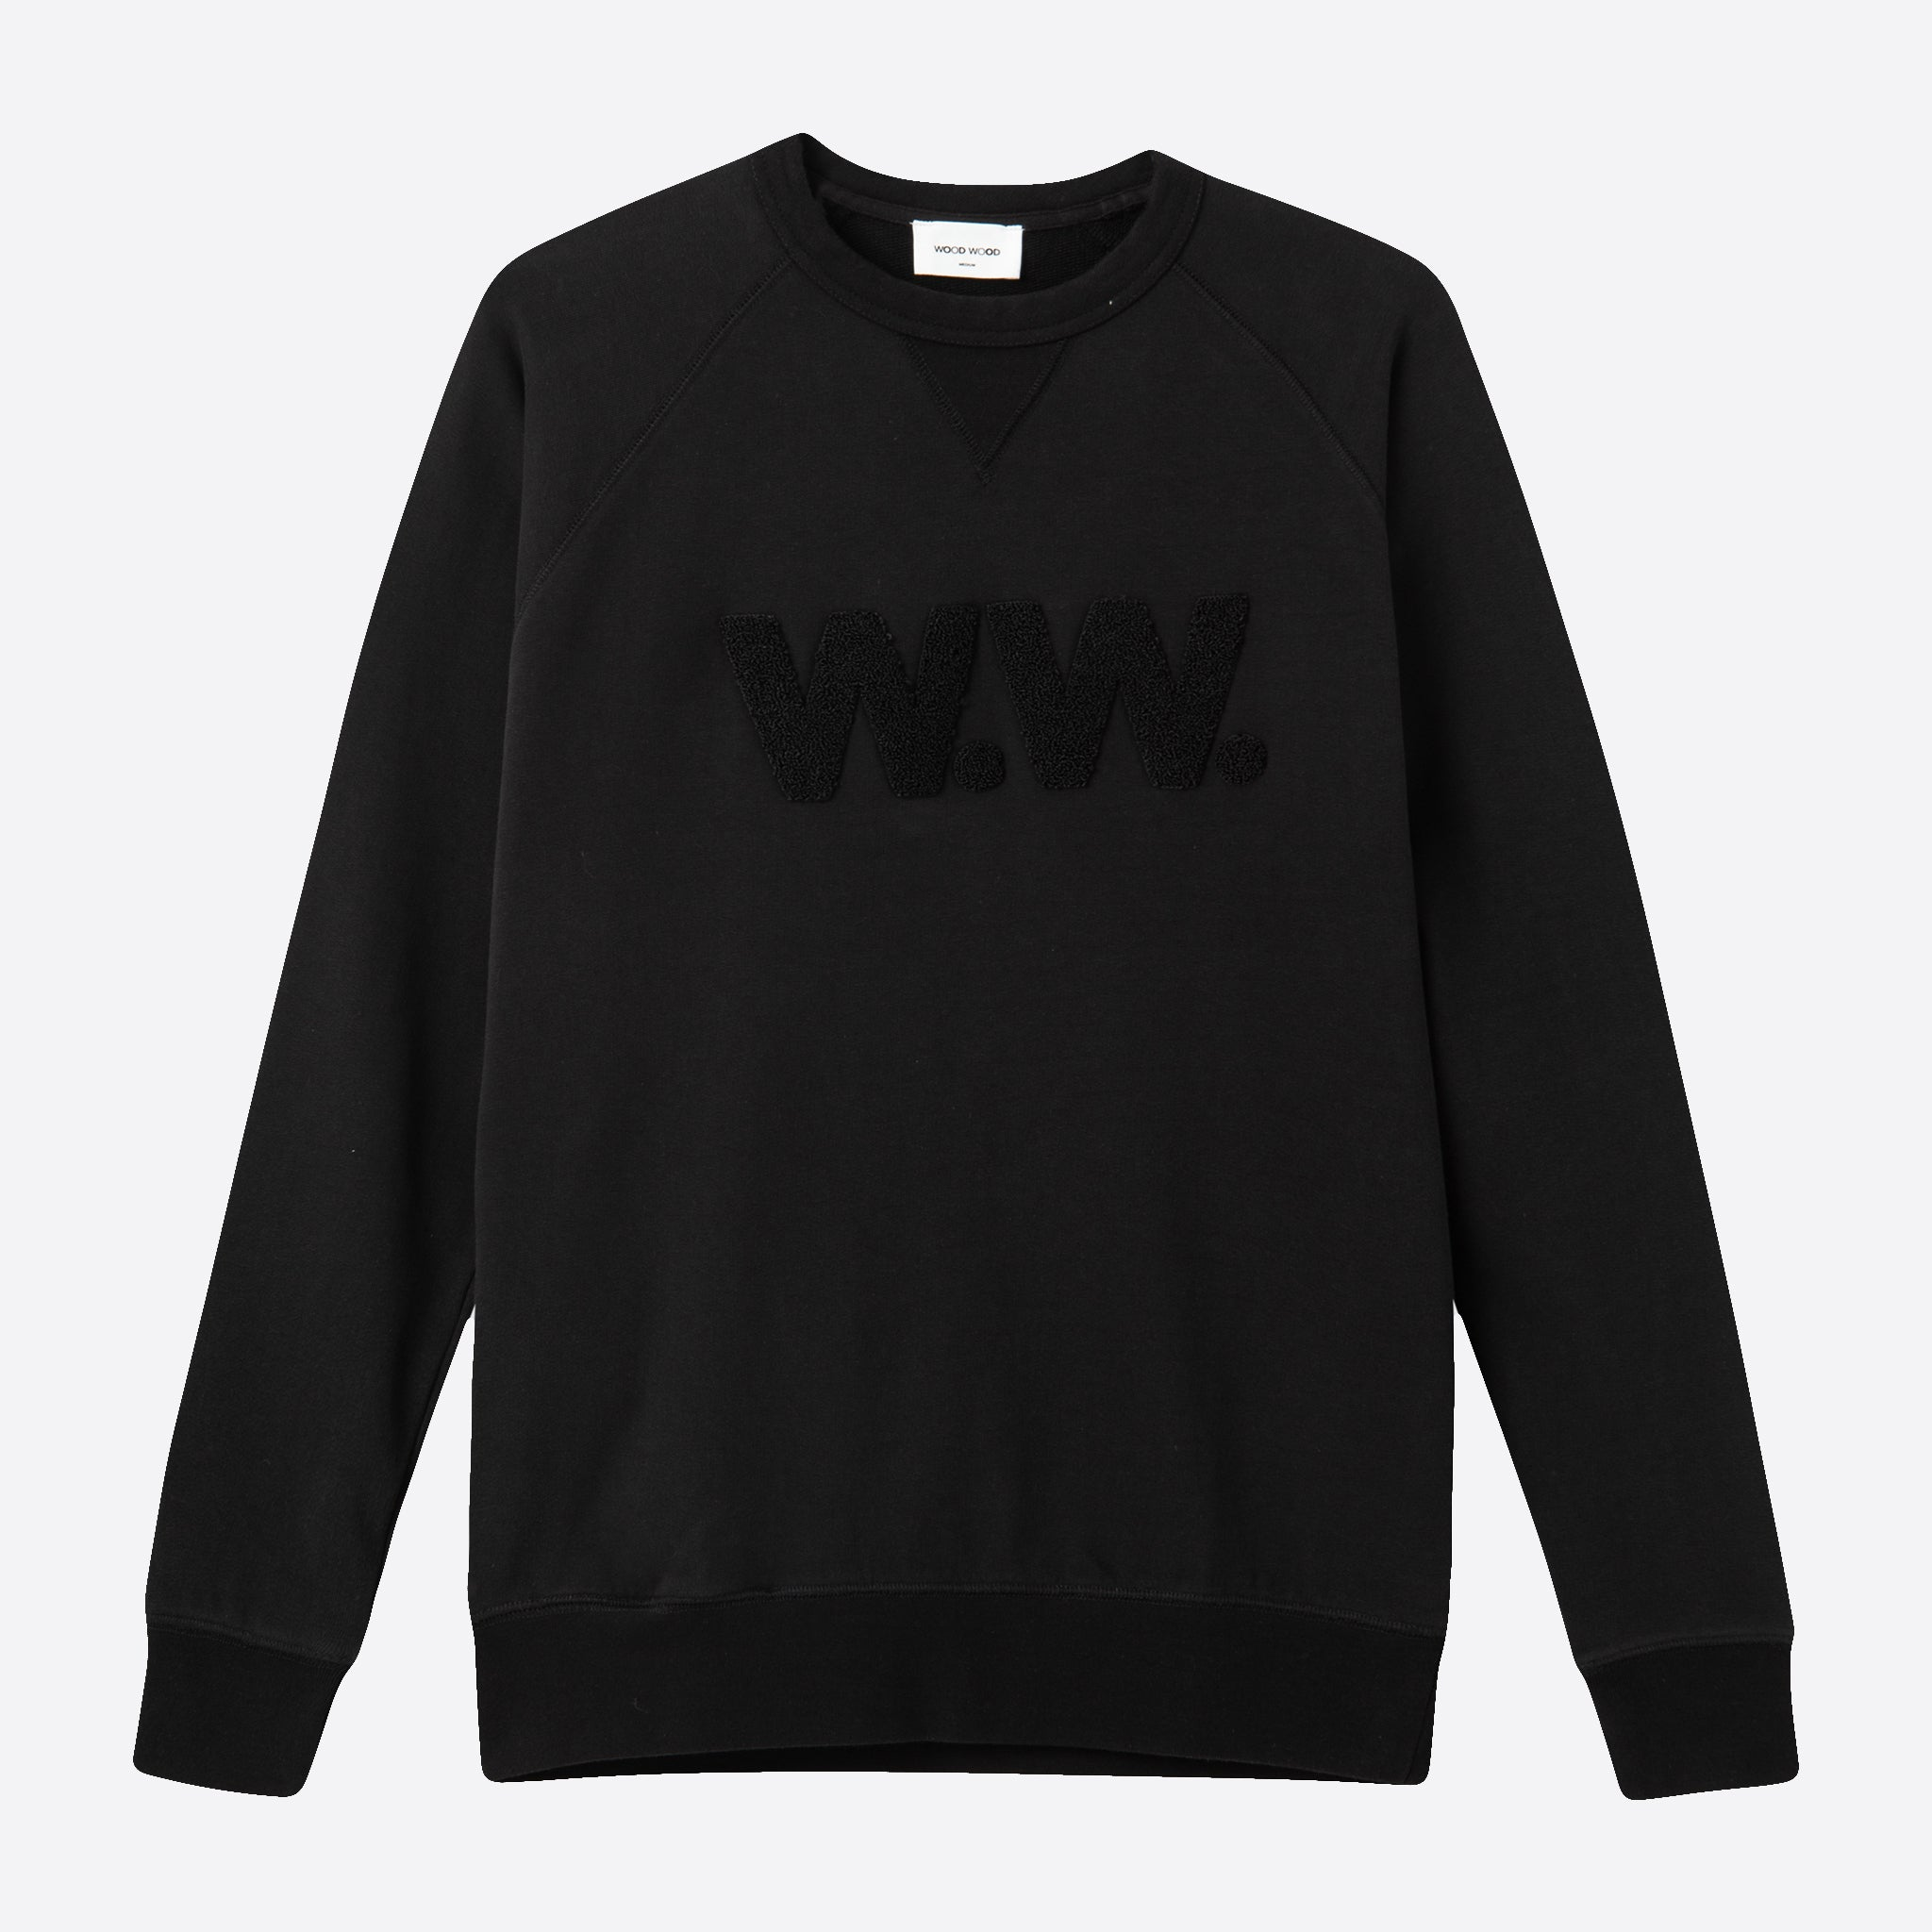 Wood Wood Hester Sweatshirt in Black